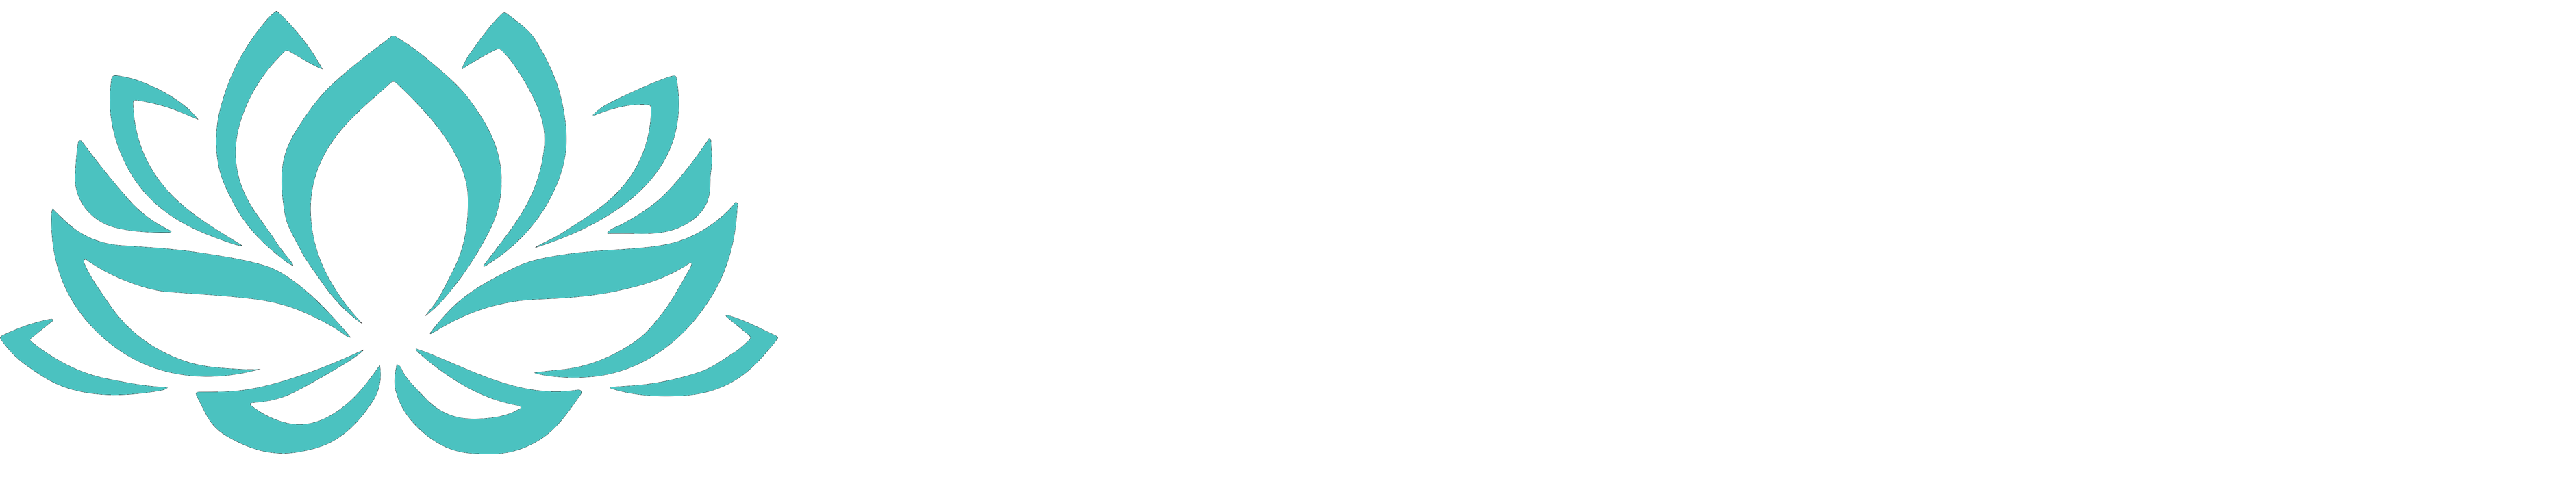 Mind and Body Pain Clinic